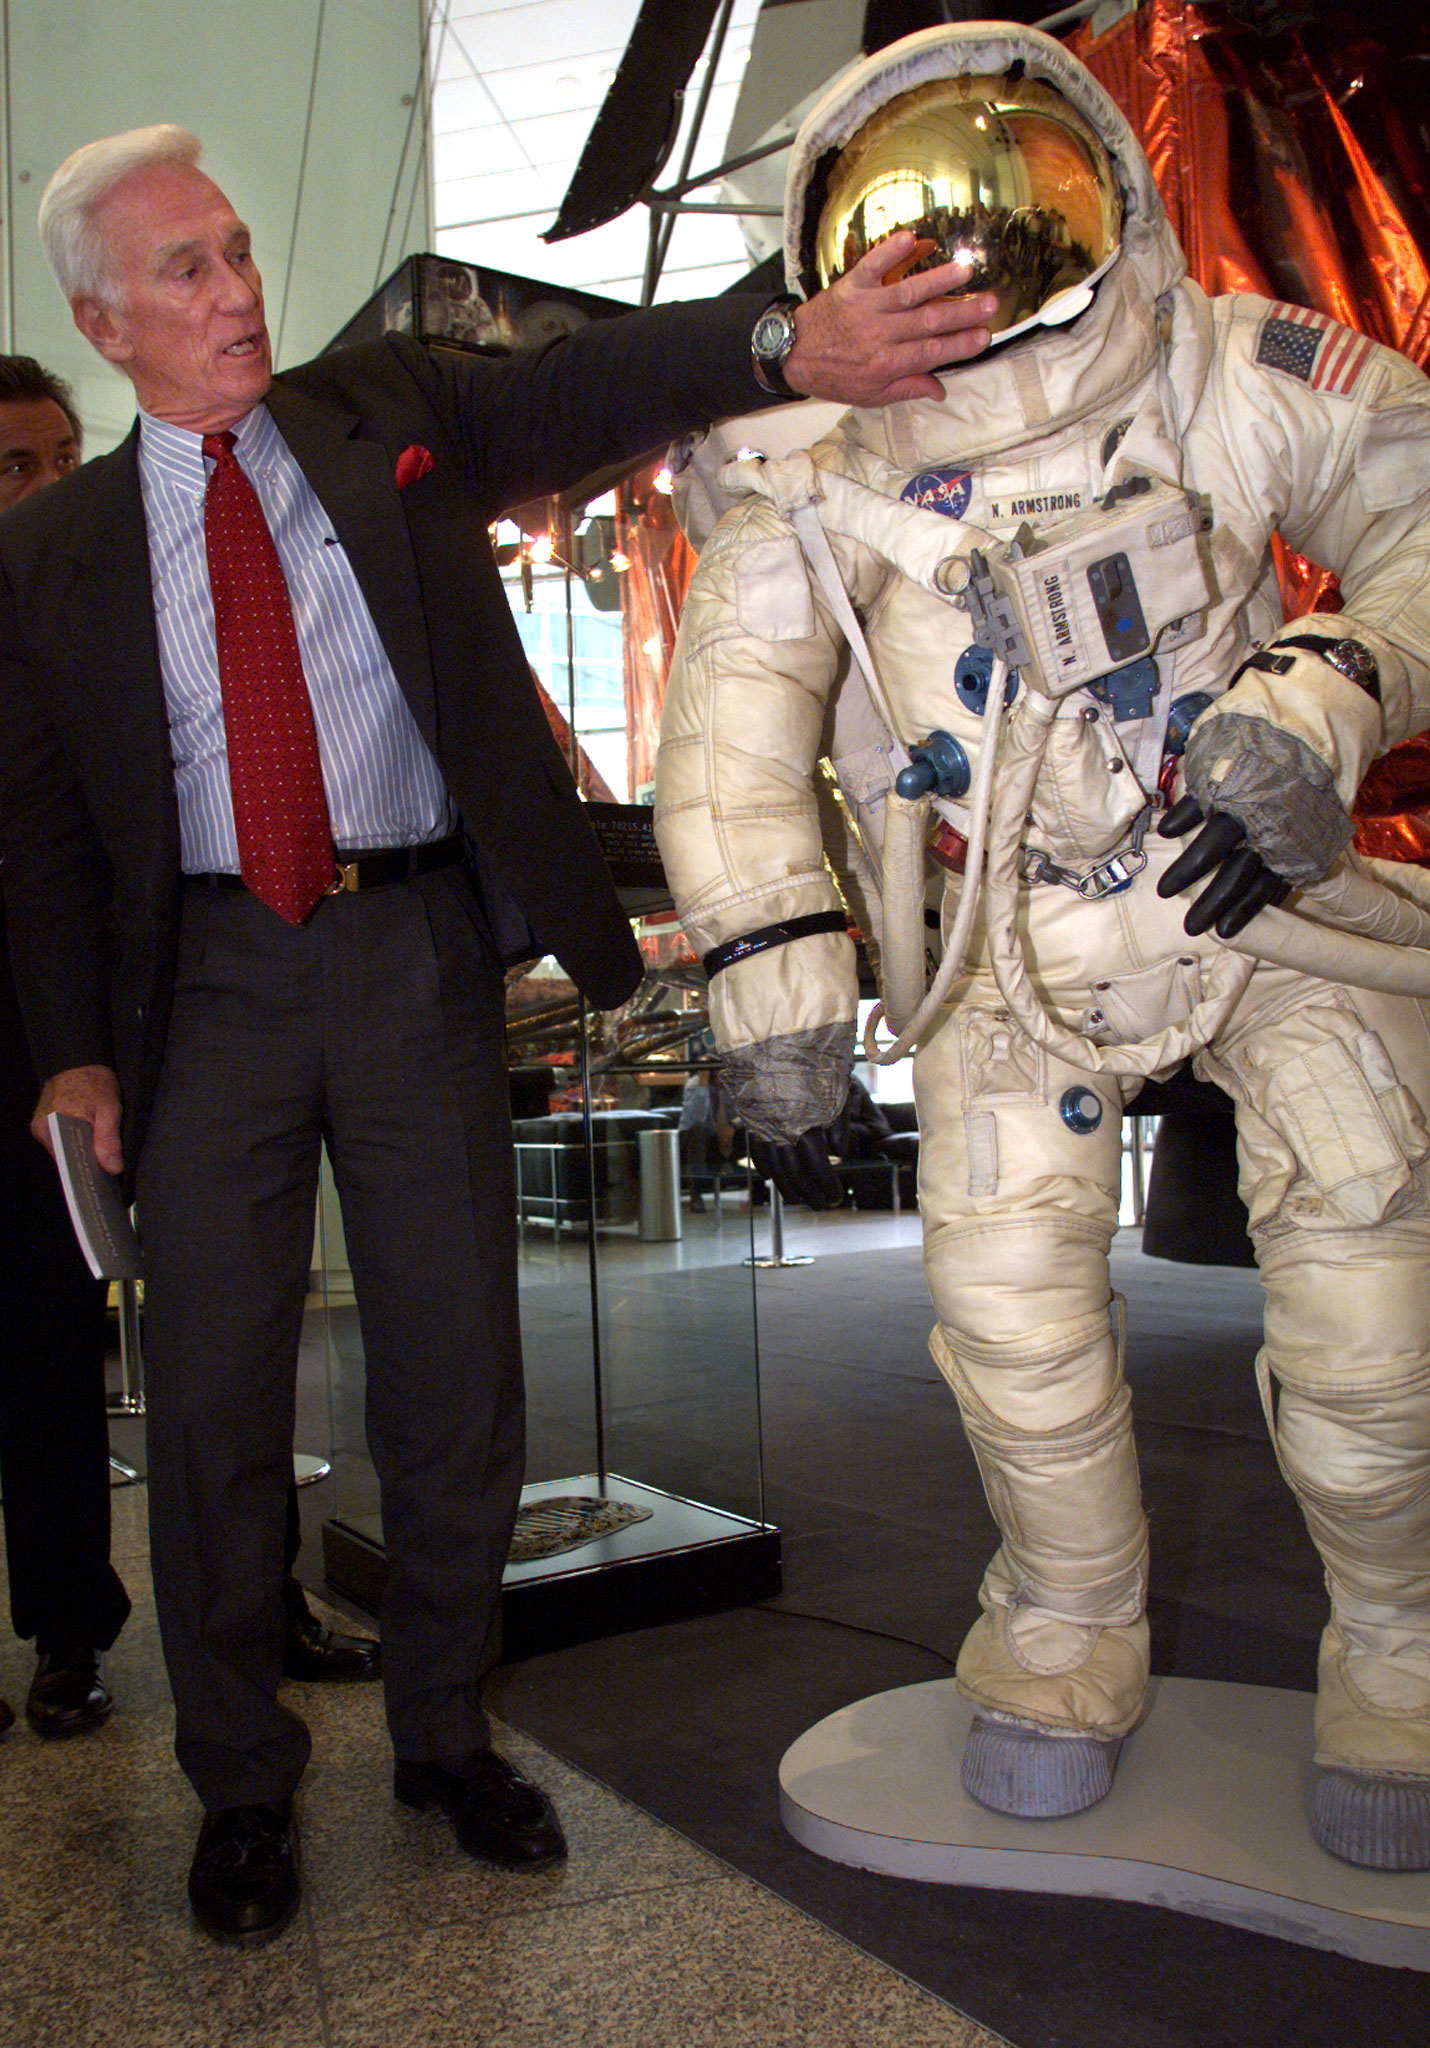 Eugene Cernan, the last man to walk on the moon, touches the visor of the helmet of NASA astronaut Neil Armstrong, first man on the moon at an exhibit in Frankfurt, July 20. The exhibtion marks the 30th anniversary of the Apollo 11 moonwalk.